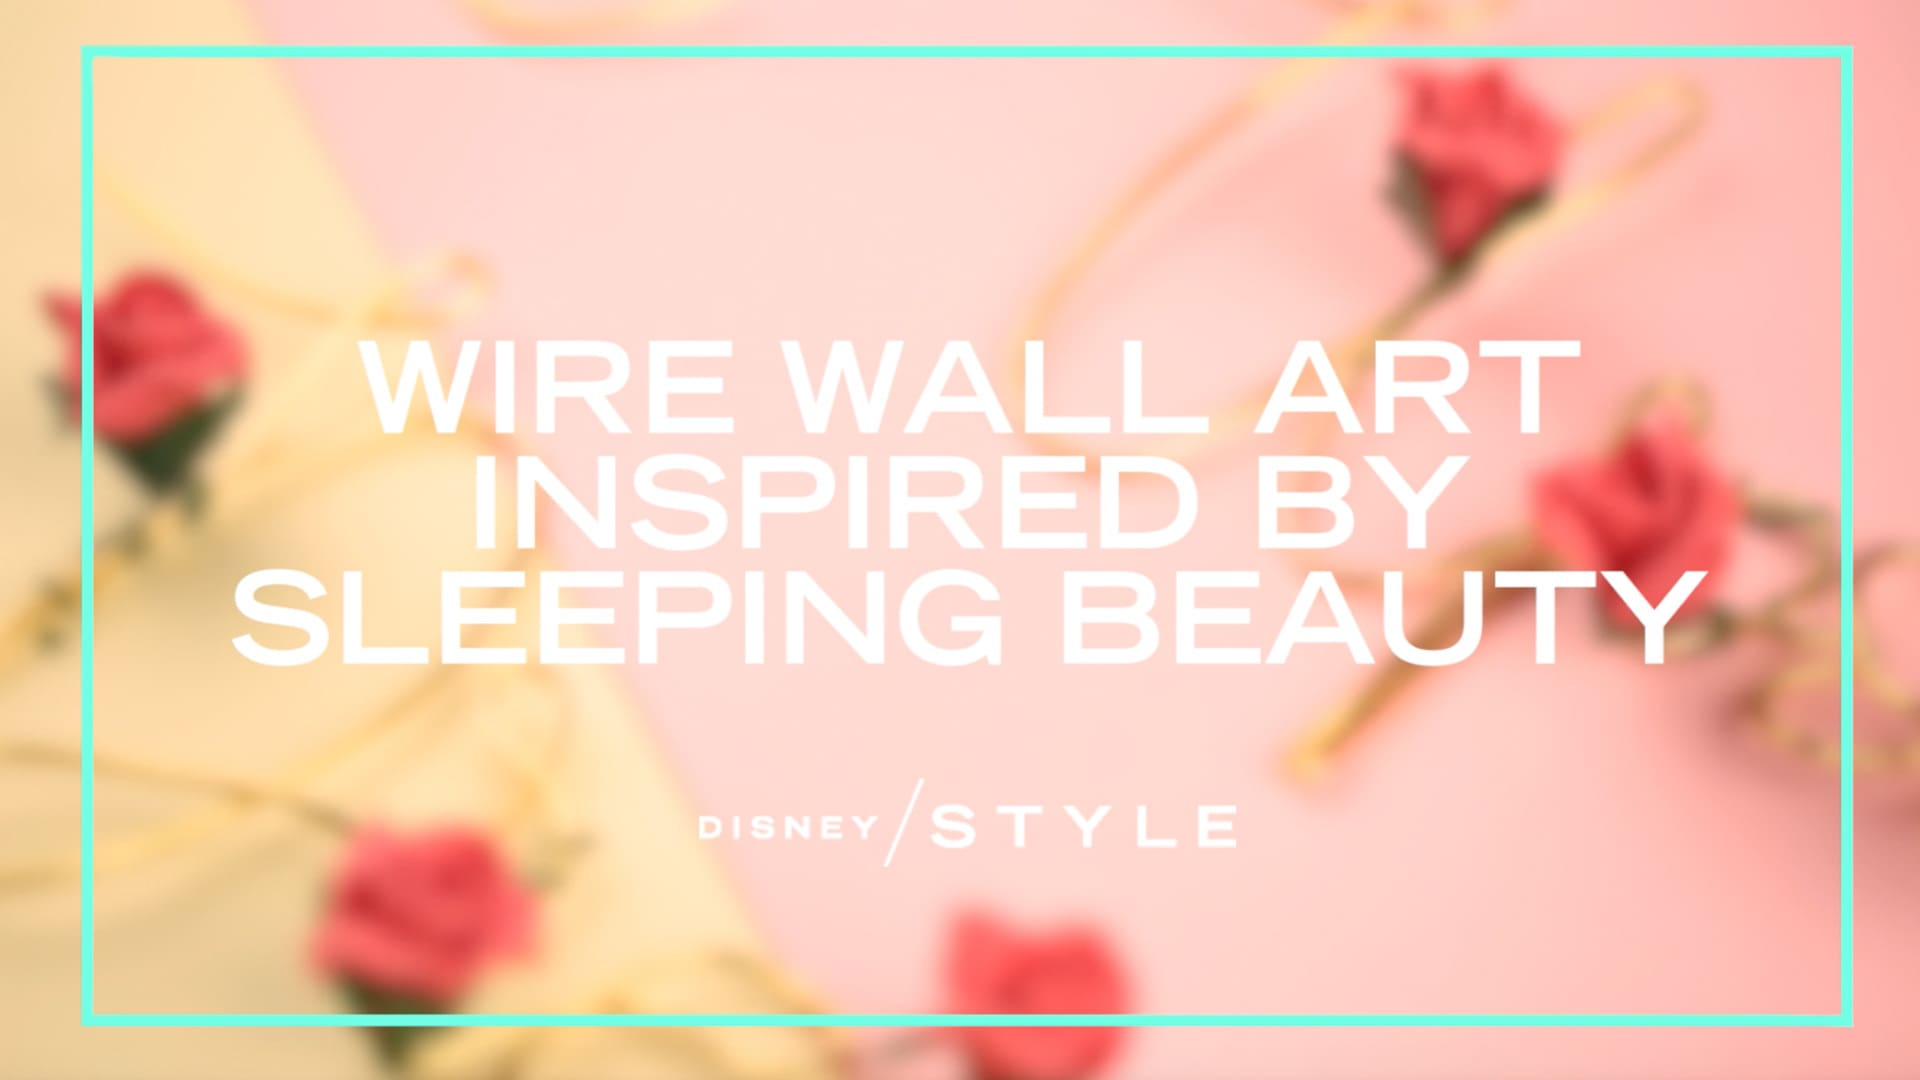 Decorate Your Room With This Beautiful Gold Wall Art Inspired By Sleeping Beauty